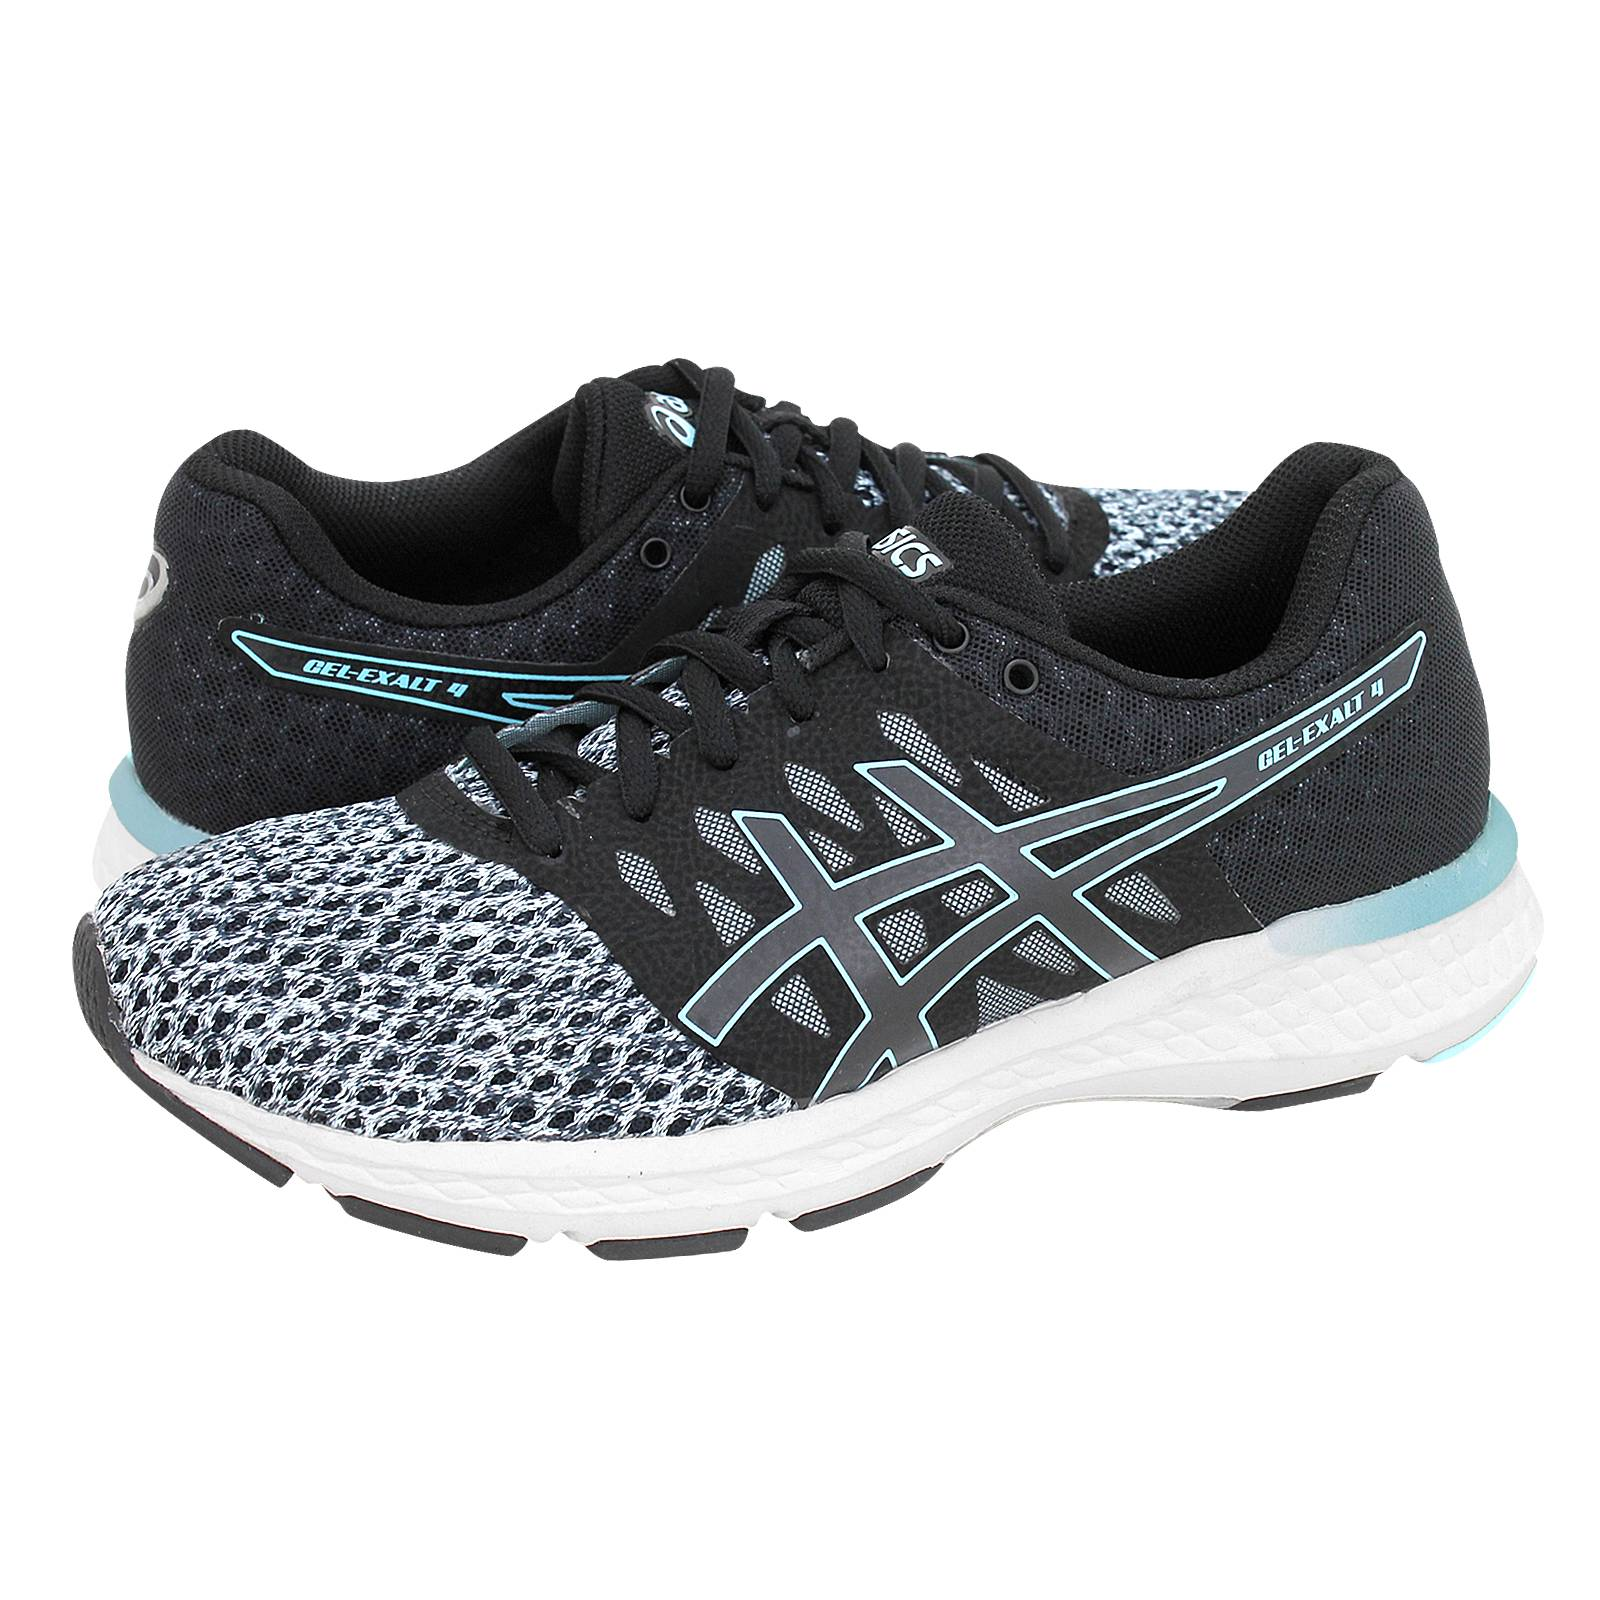 timeless design 29bb0 4b8e1 Gel-Exalt 4 - Asics Women s athletic shoes made of fabric and ...